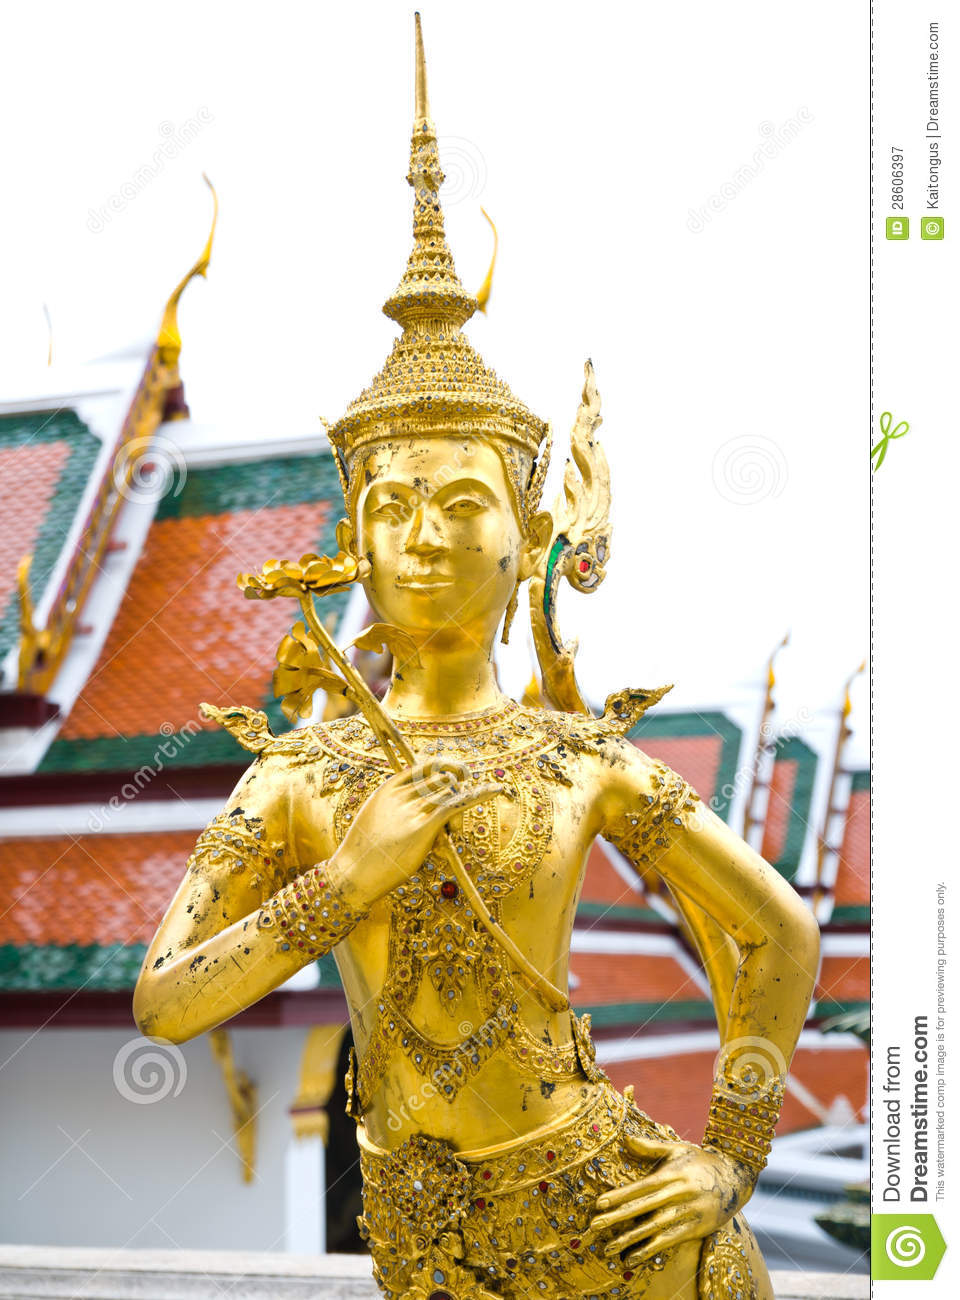 mc kinnon buddhist singles Descripción: the ripening of american weltanschauung and the degradation of human condition in post 9/11 era this essay details how the state's symbol system and.